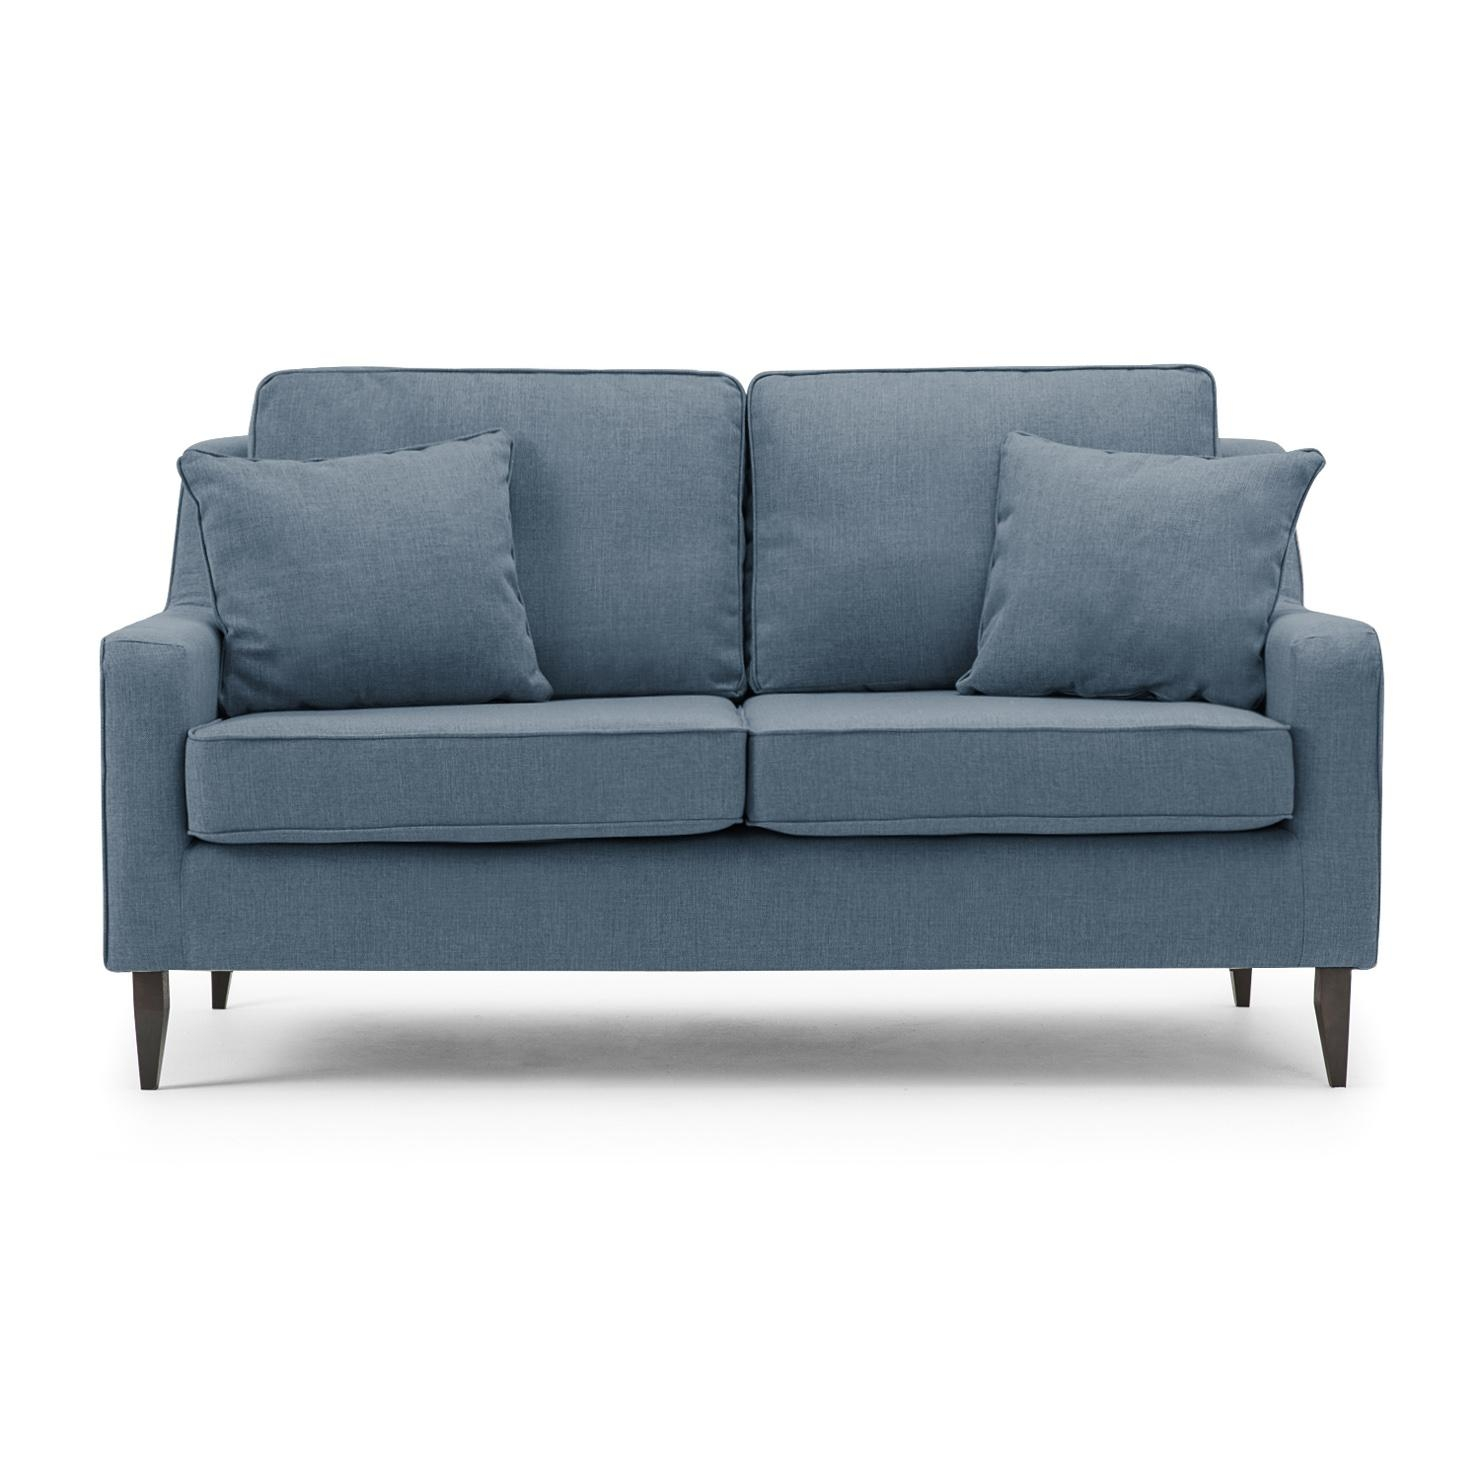 20 best collection of blue grey sofas sofa ideas